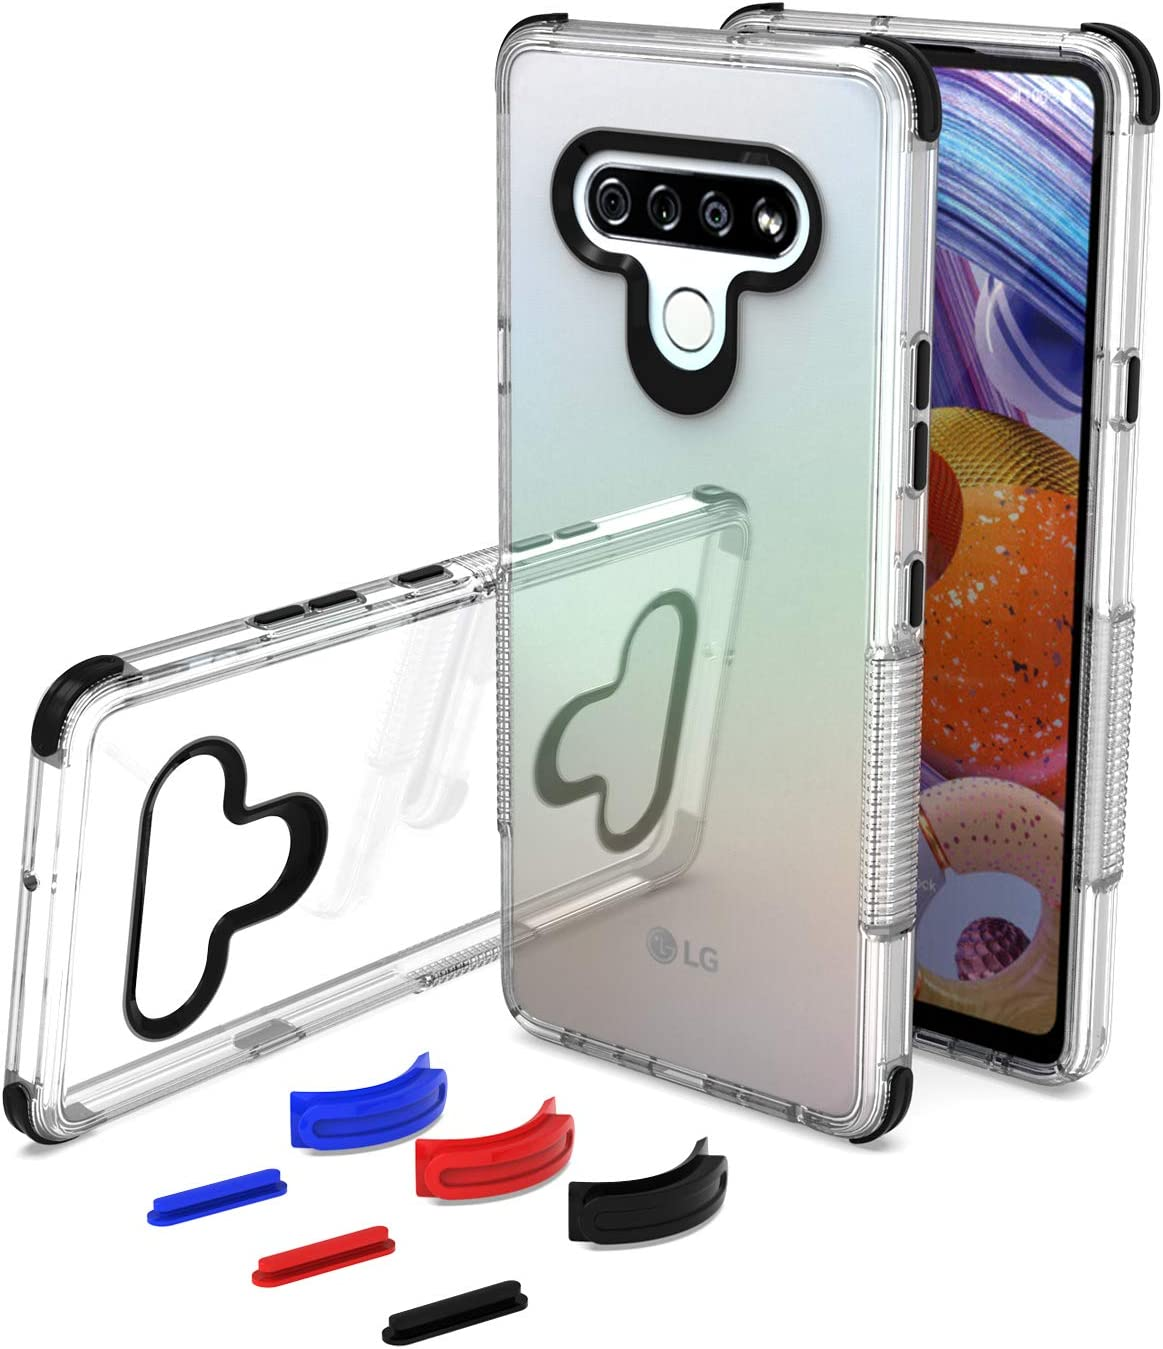 UNC Pro DIY Package Cell Phone Case for LG Stylo 6, Soft Clear TPU Hybrid Case, Shockproof Bumper Cover, Black/Blue/Red